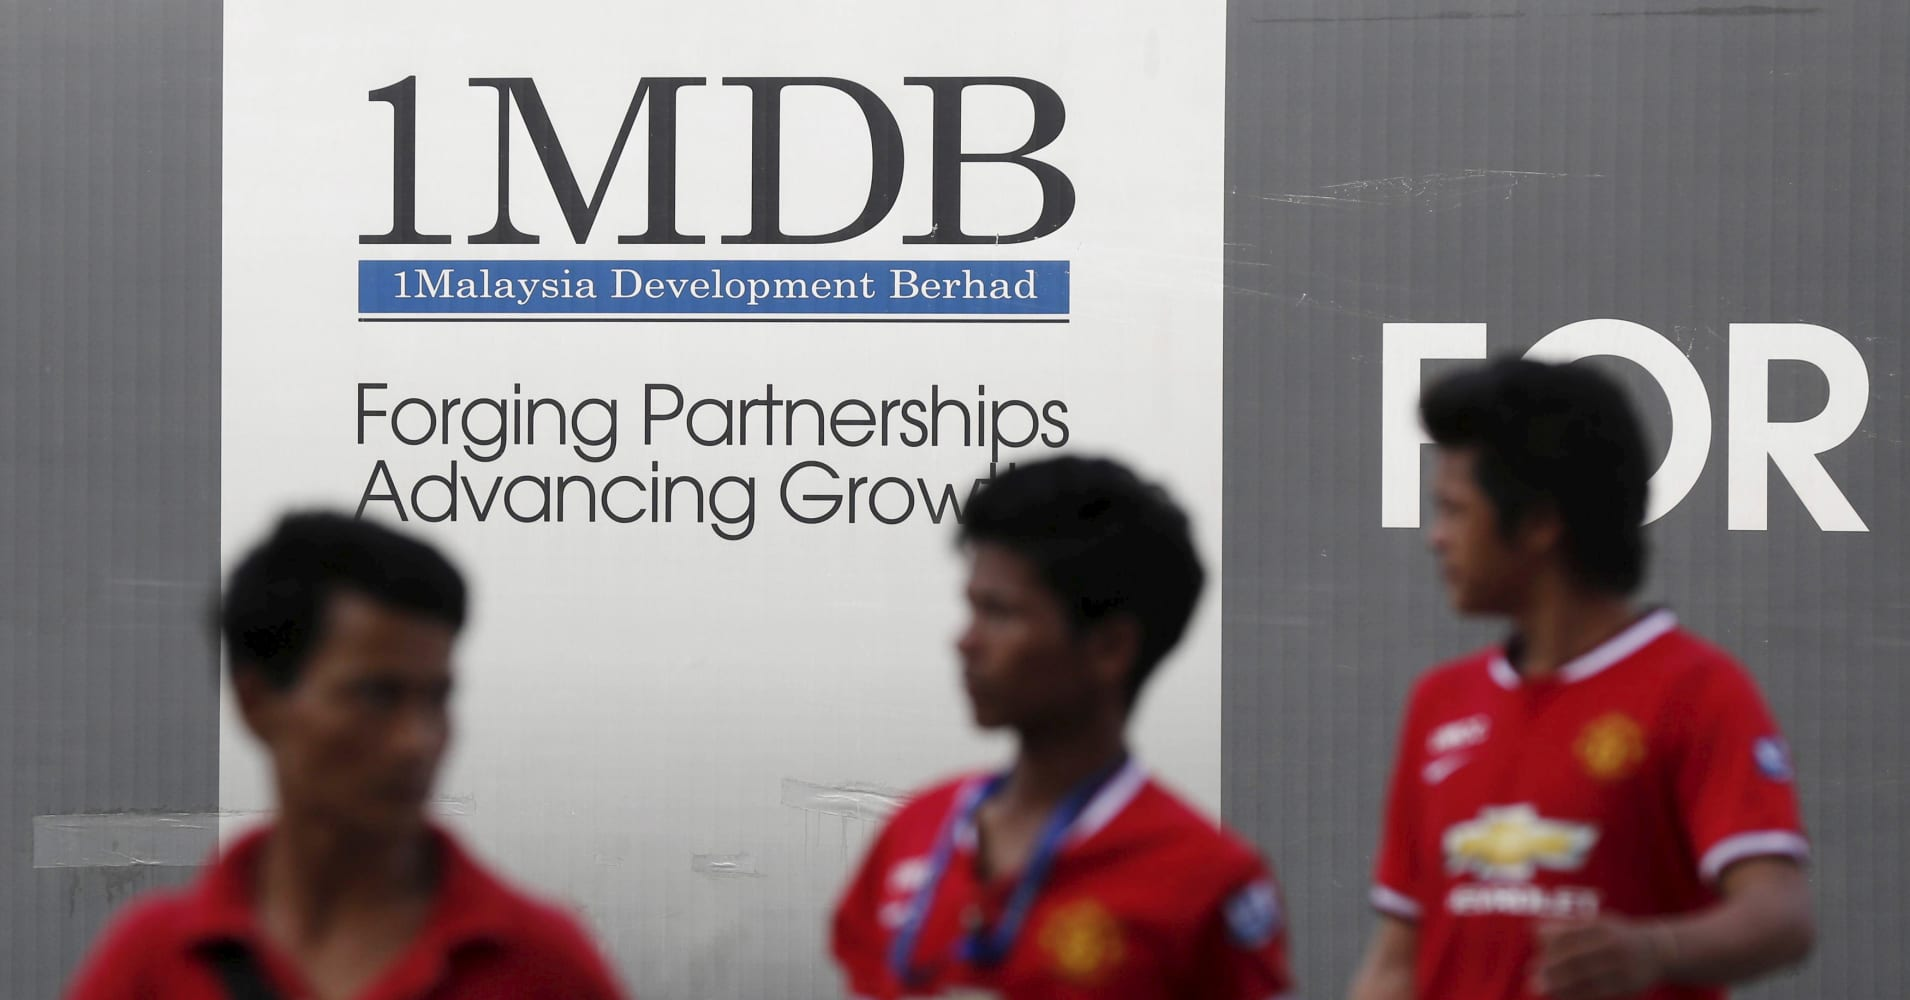 S&P warns on Malaysia's sovereign rating amid potential challenges from corruption saga